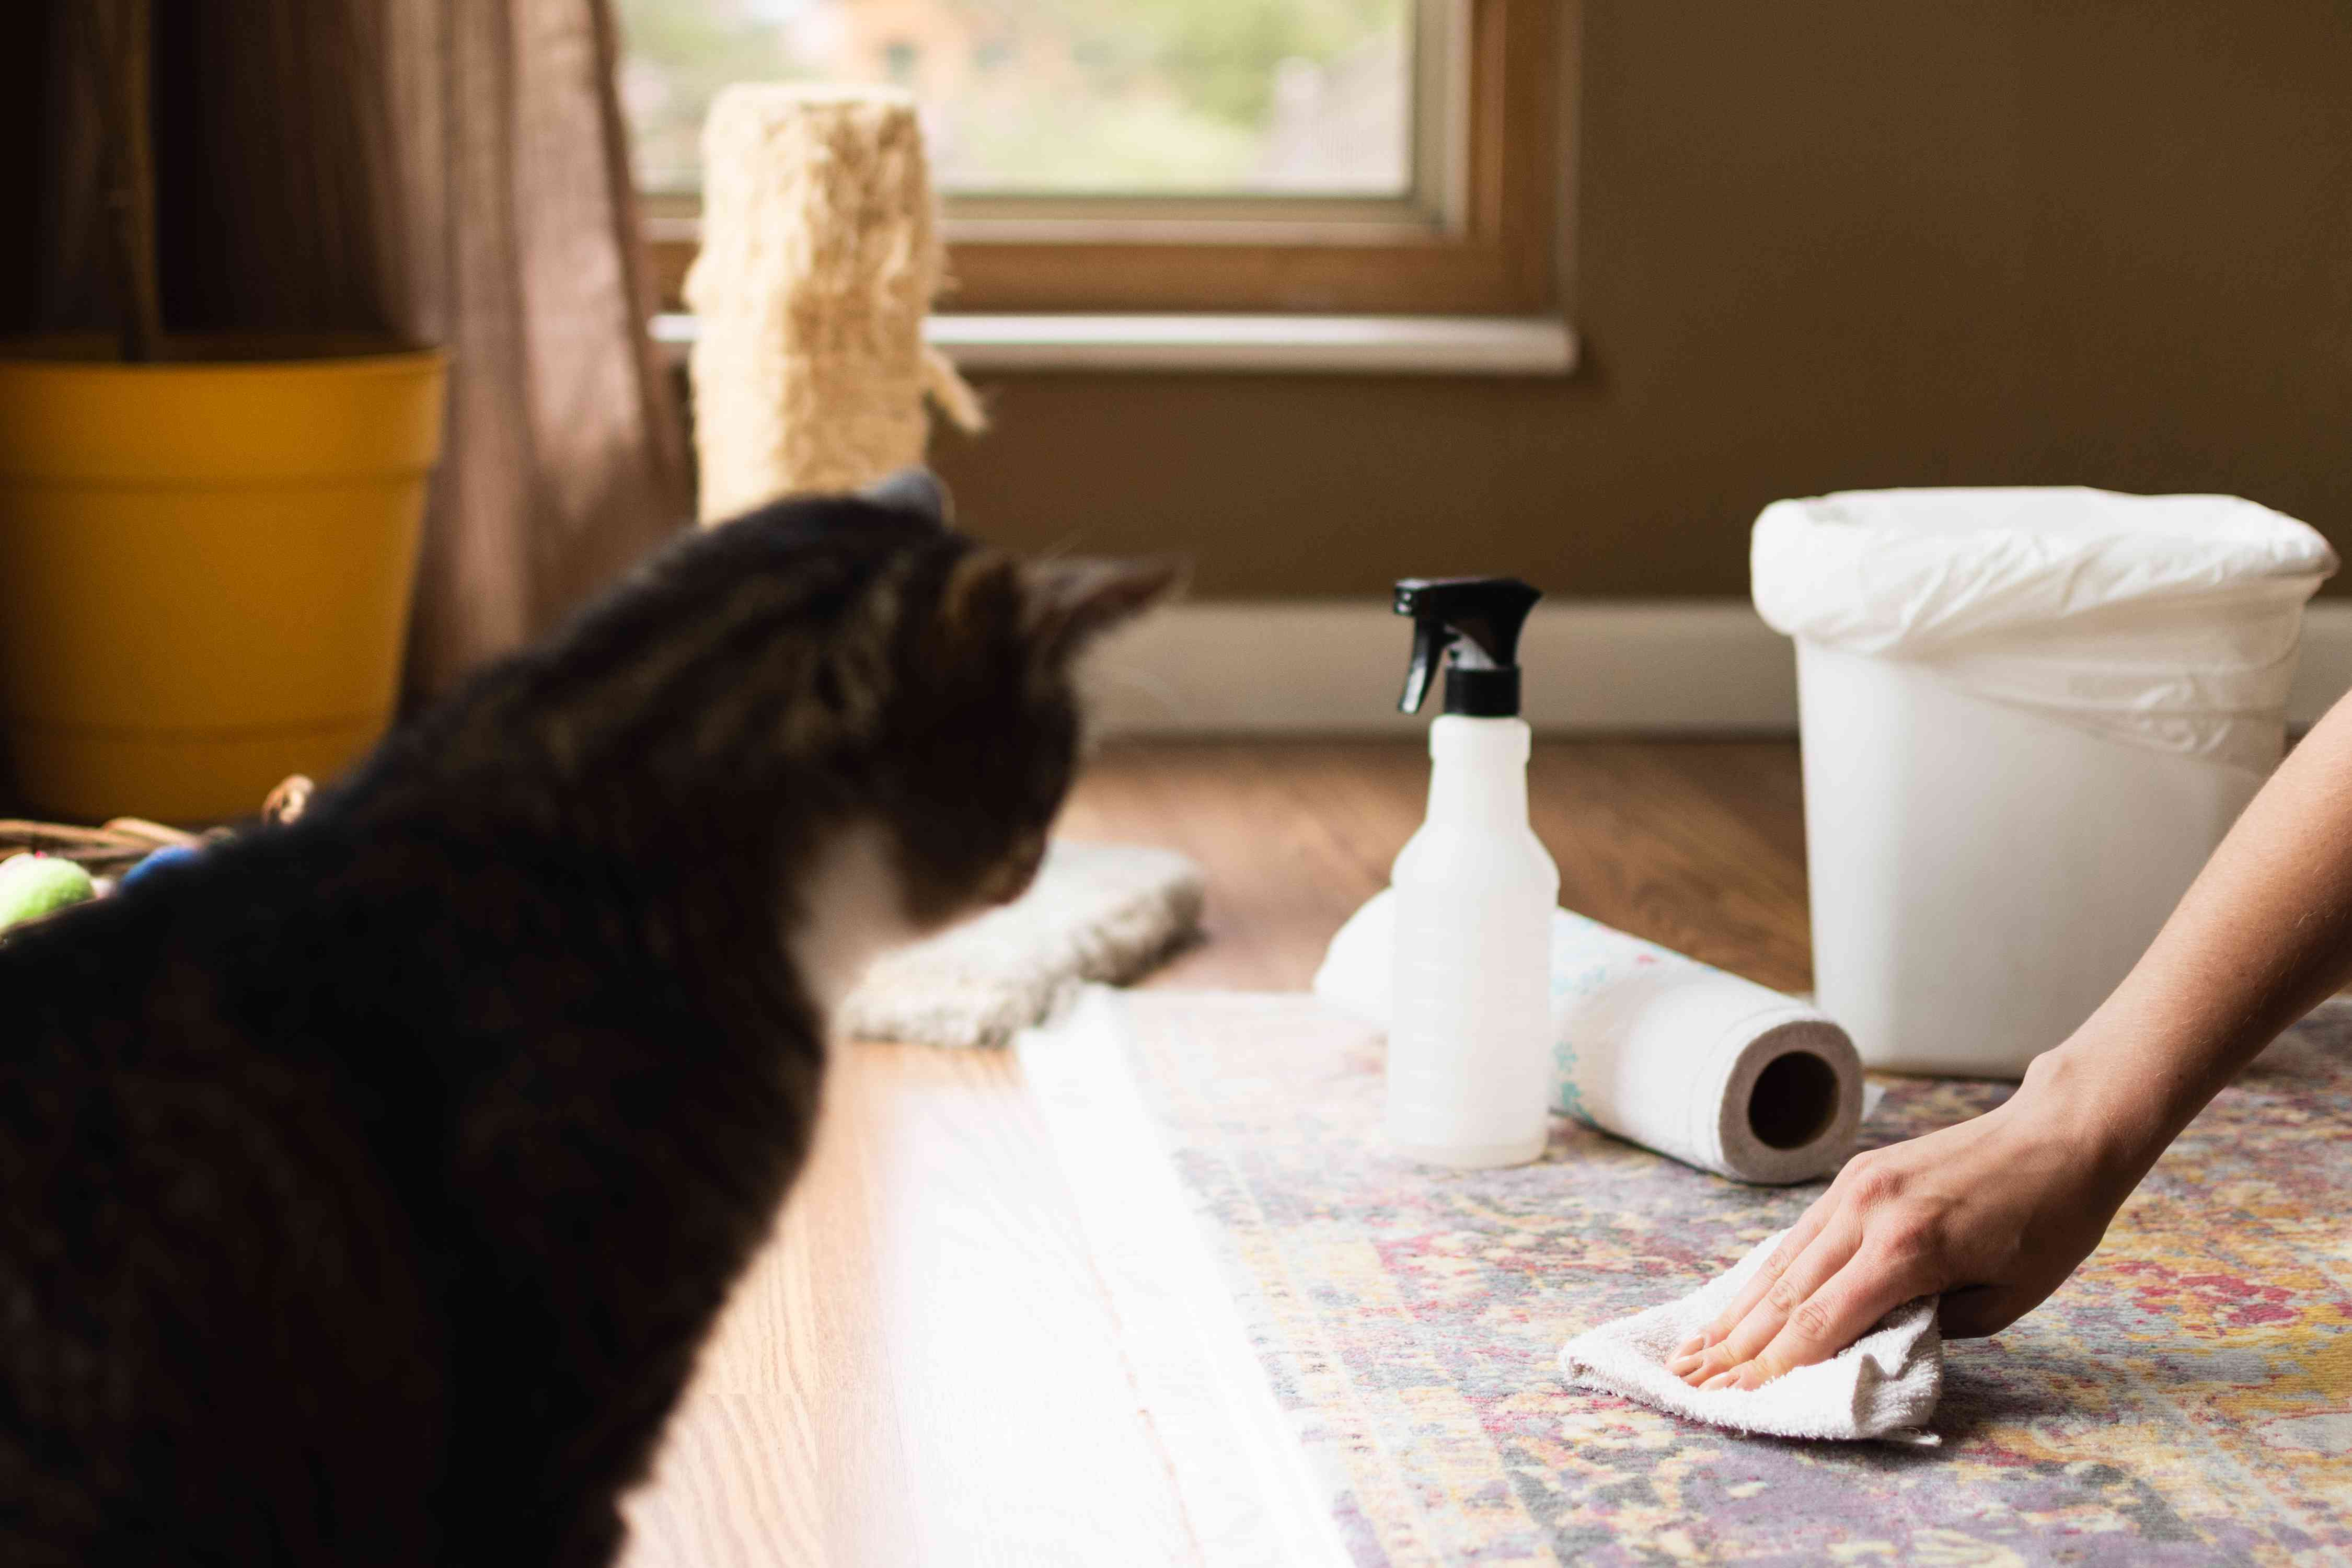 Cat urine cleaned off rug with white cloth and spry bottle with cleaning solution